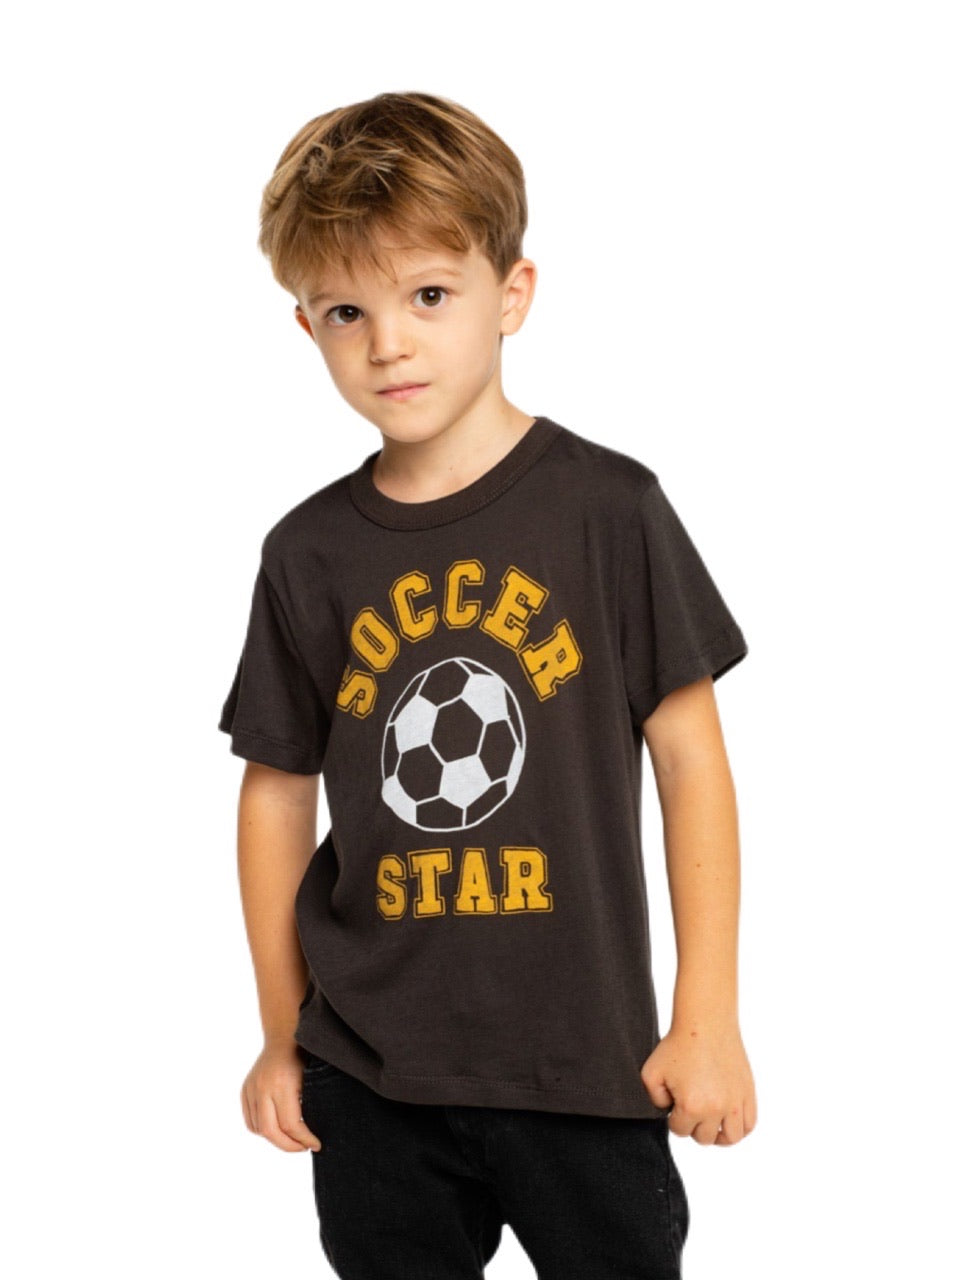 Chaser Boys Black Short Sleeve Soccer Tee